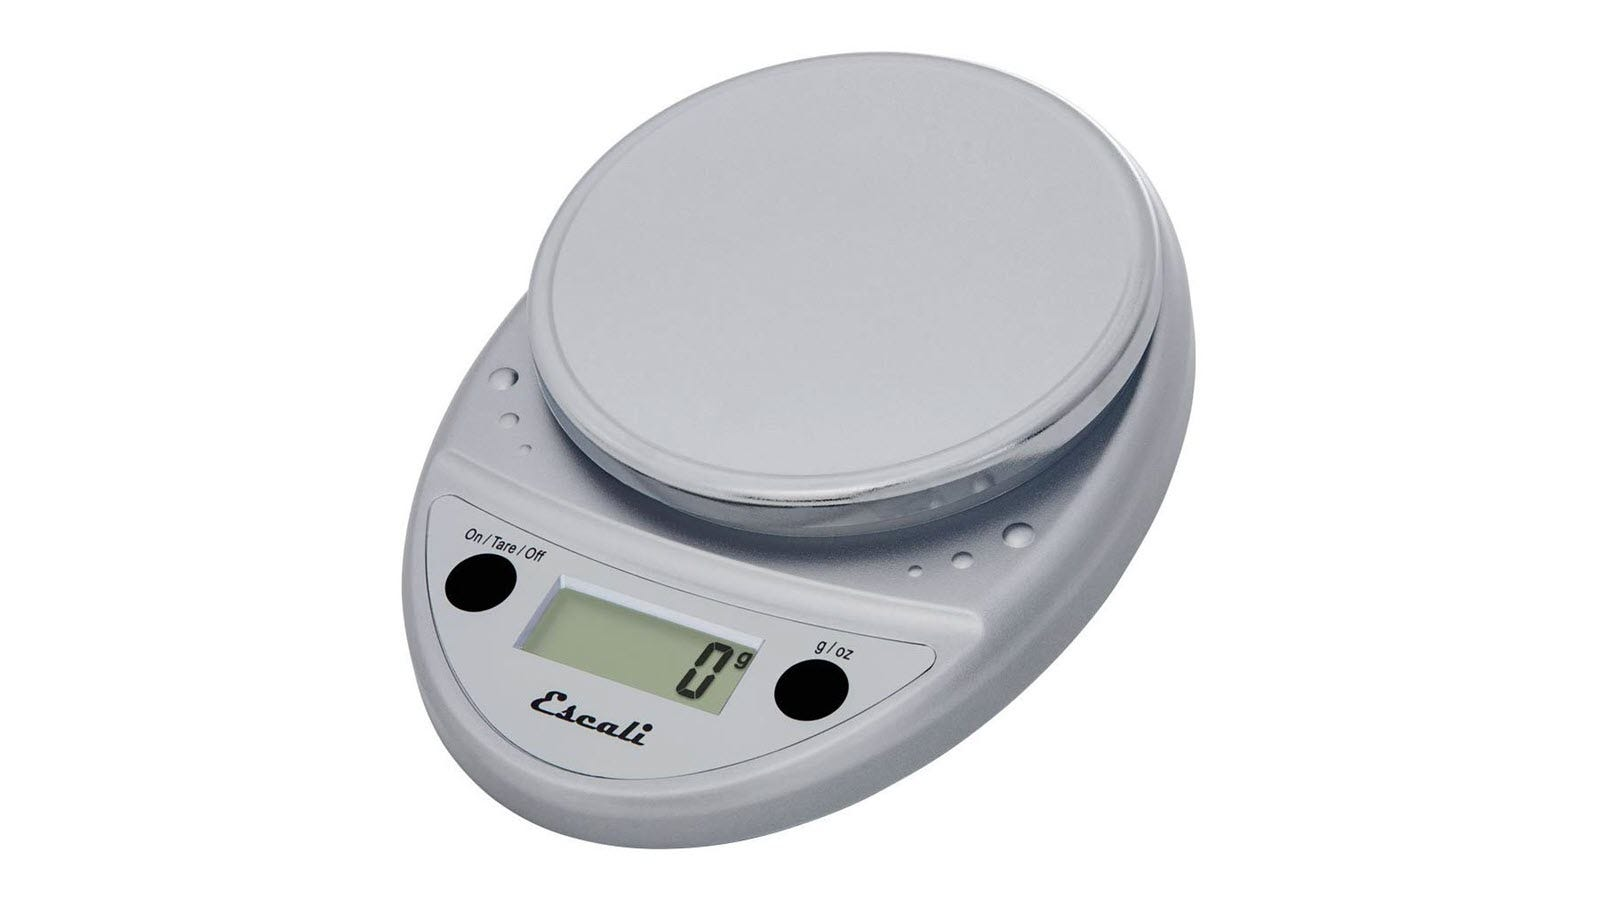 A silver scale with two black buttons and an LCD screen reading 0 grams.